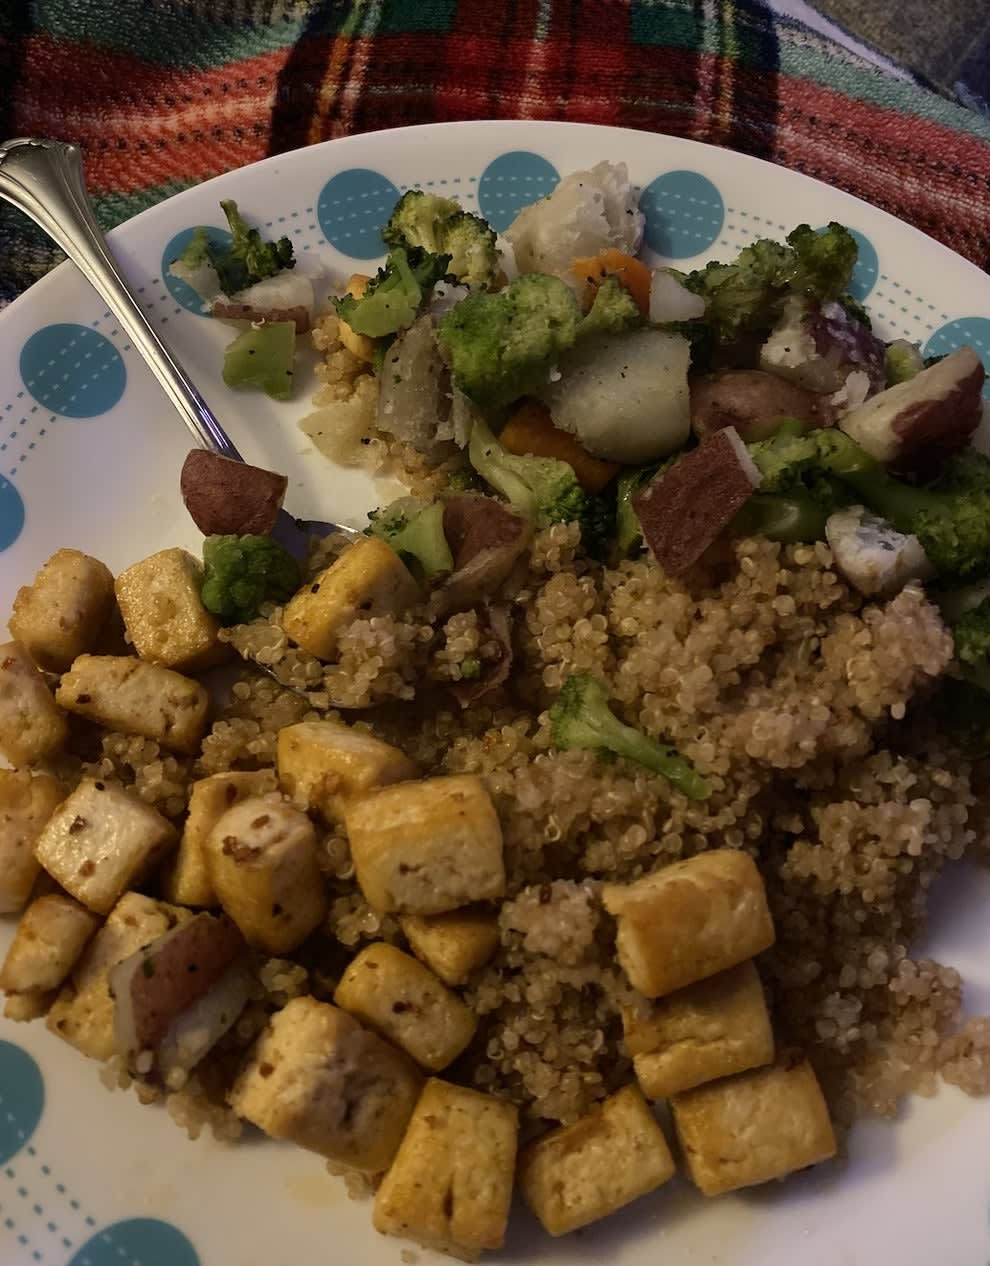 A plate of tofu and vegetables